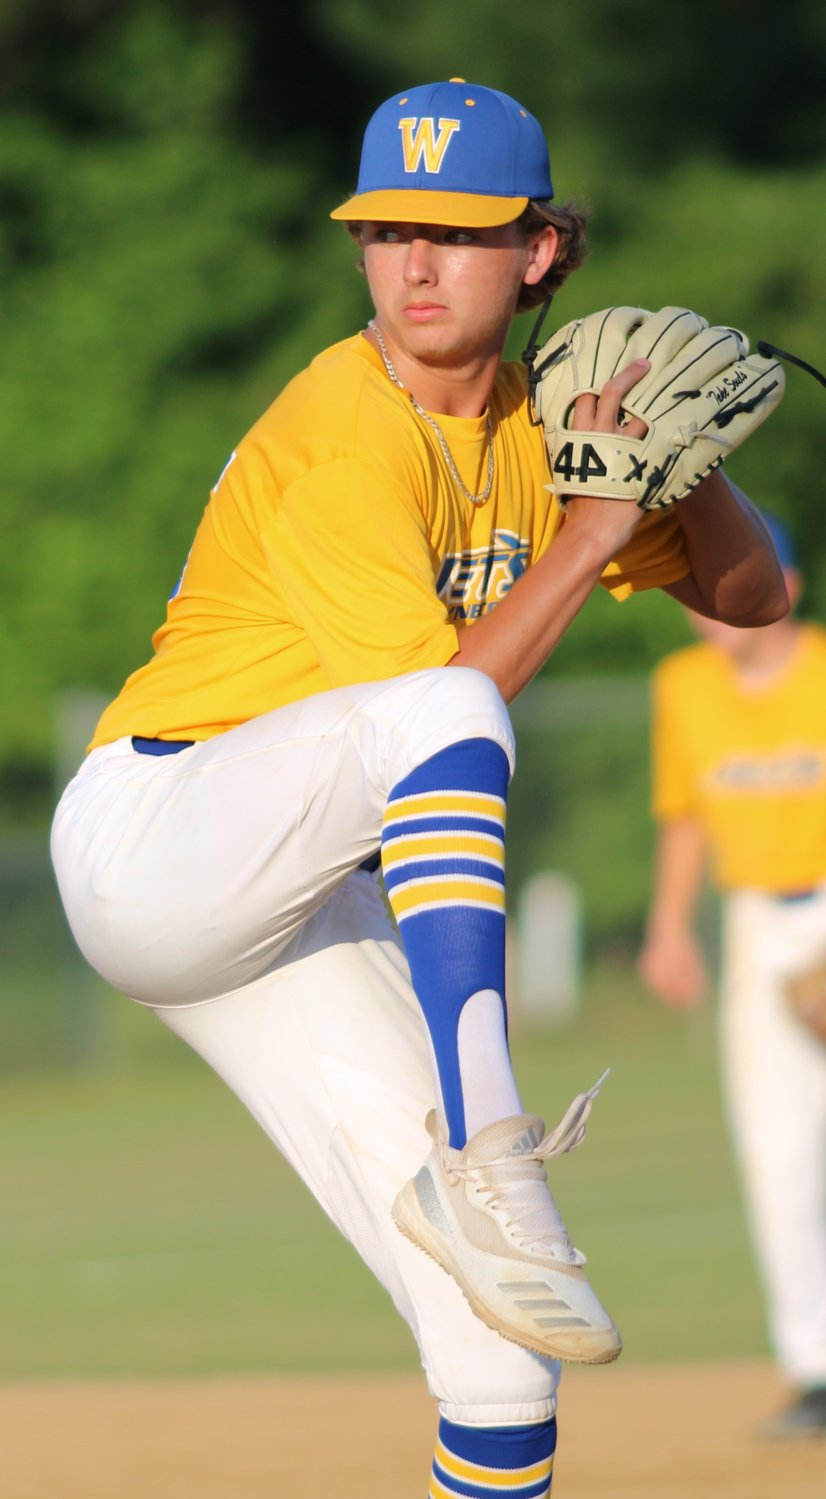 Wayne County Jets Blue left-hander Cohen Waddell threw a five-hitter in five-plus innings during a 9-3 victory over Kinston on Thursday evening.